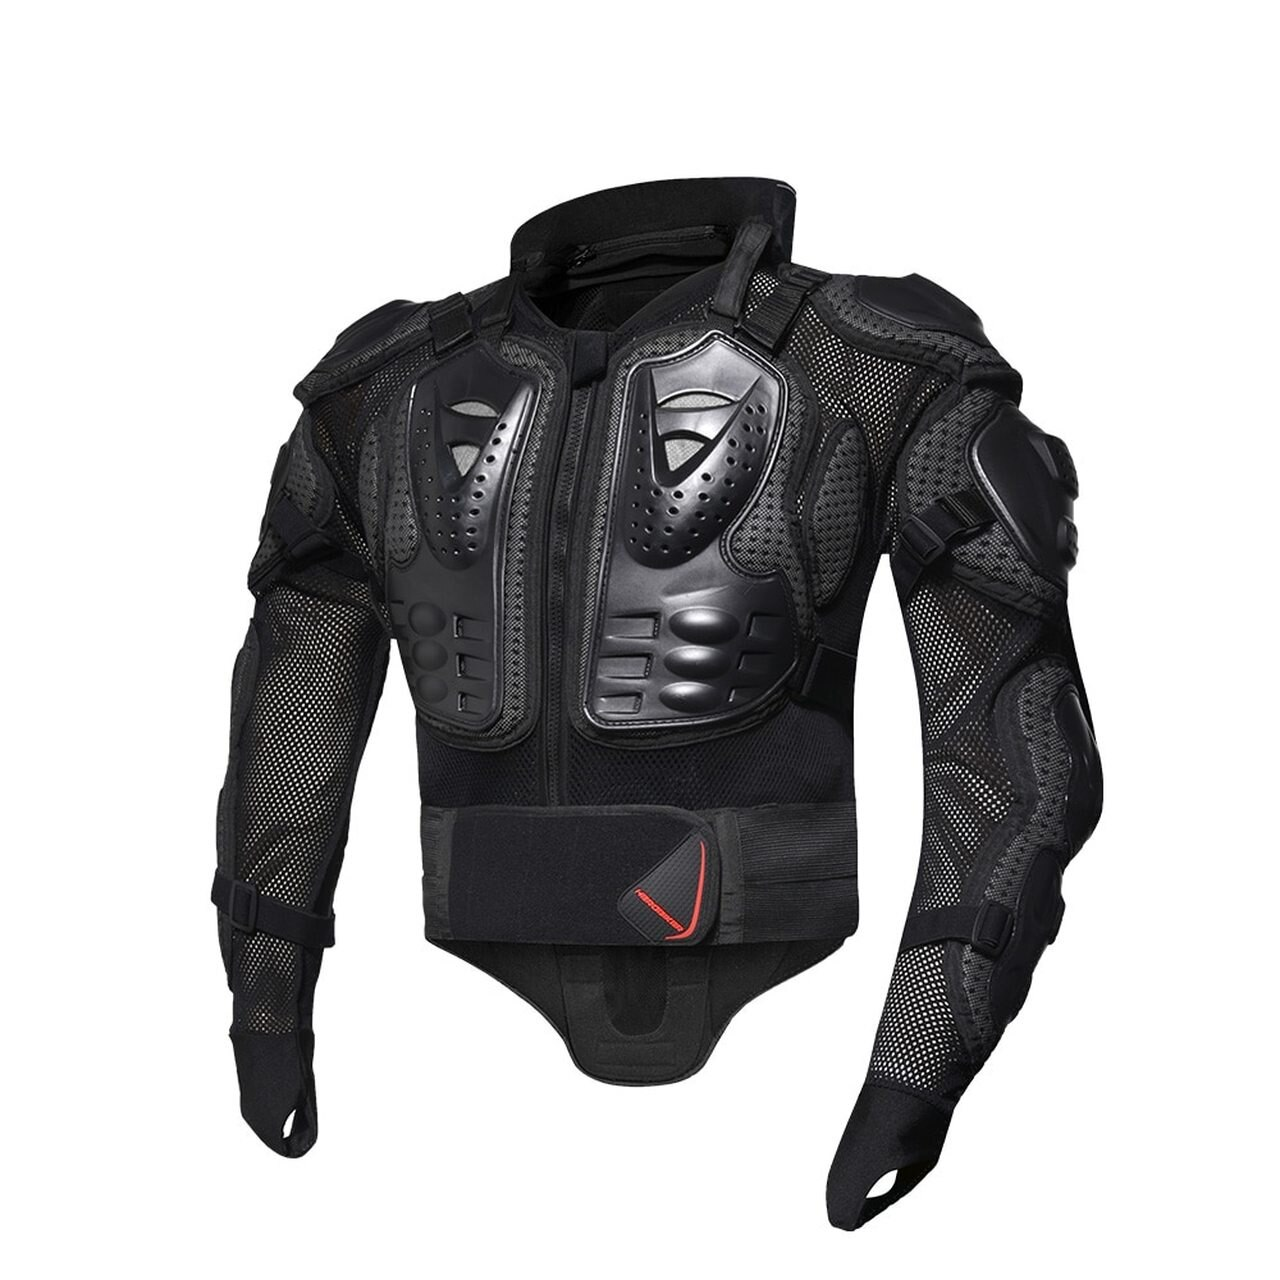 Motorcycle Armor Body Protector – One Of The Important Biking Safety Tips